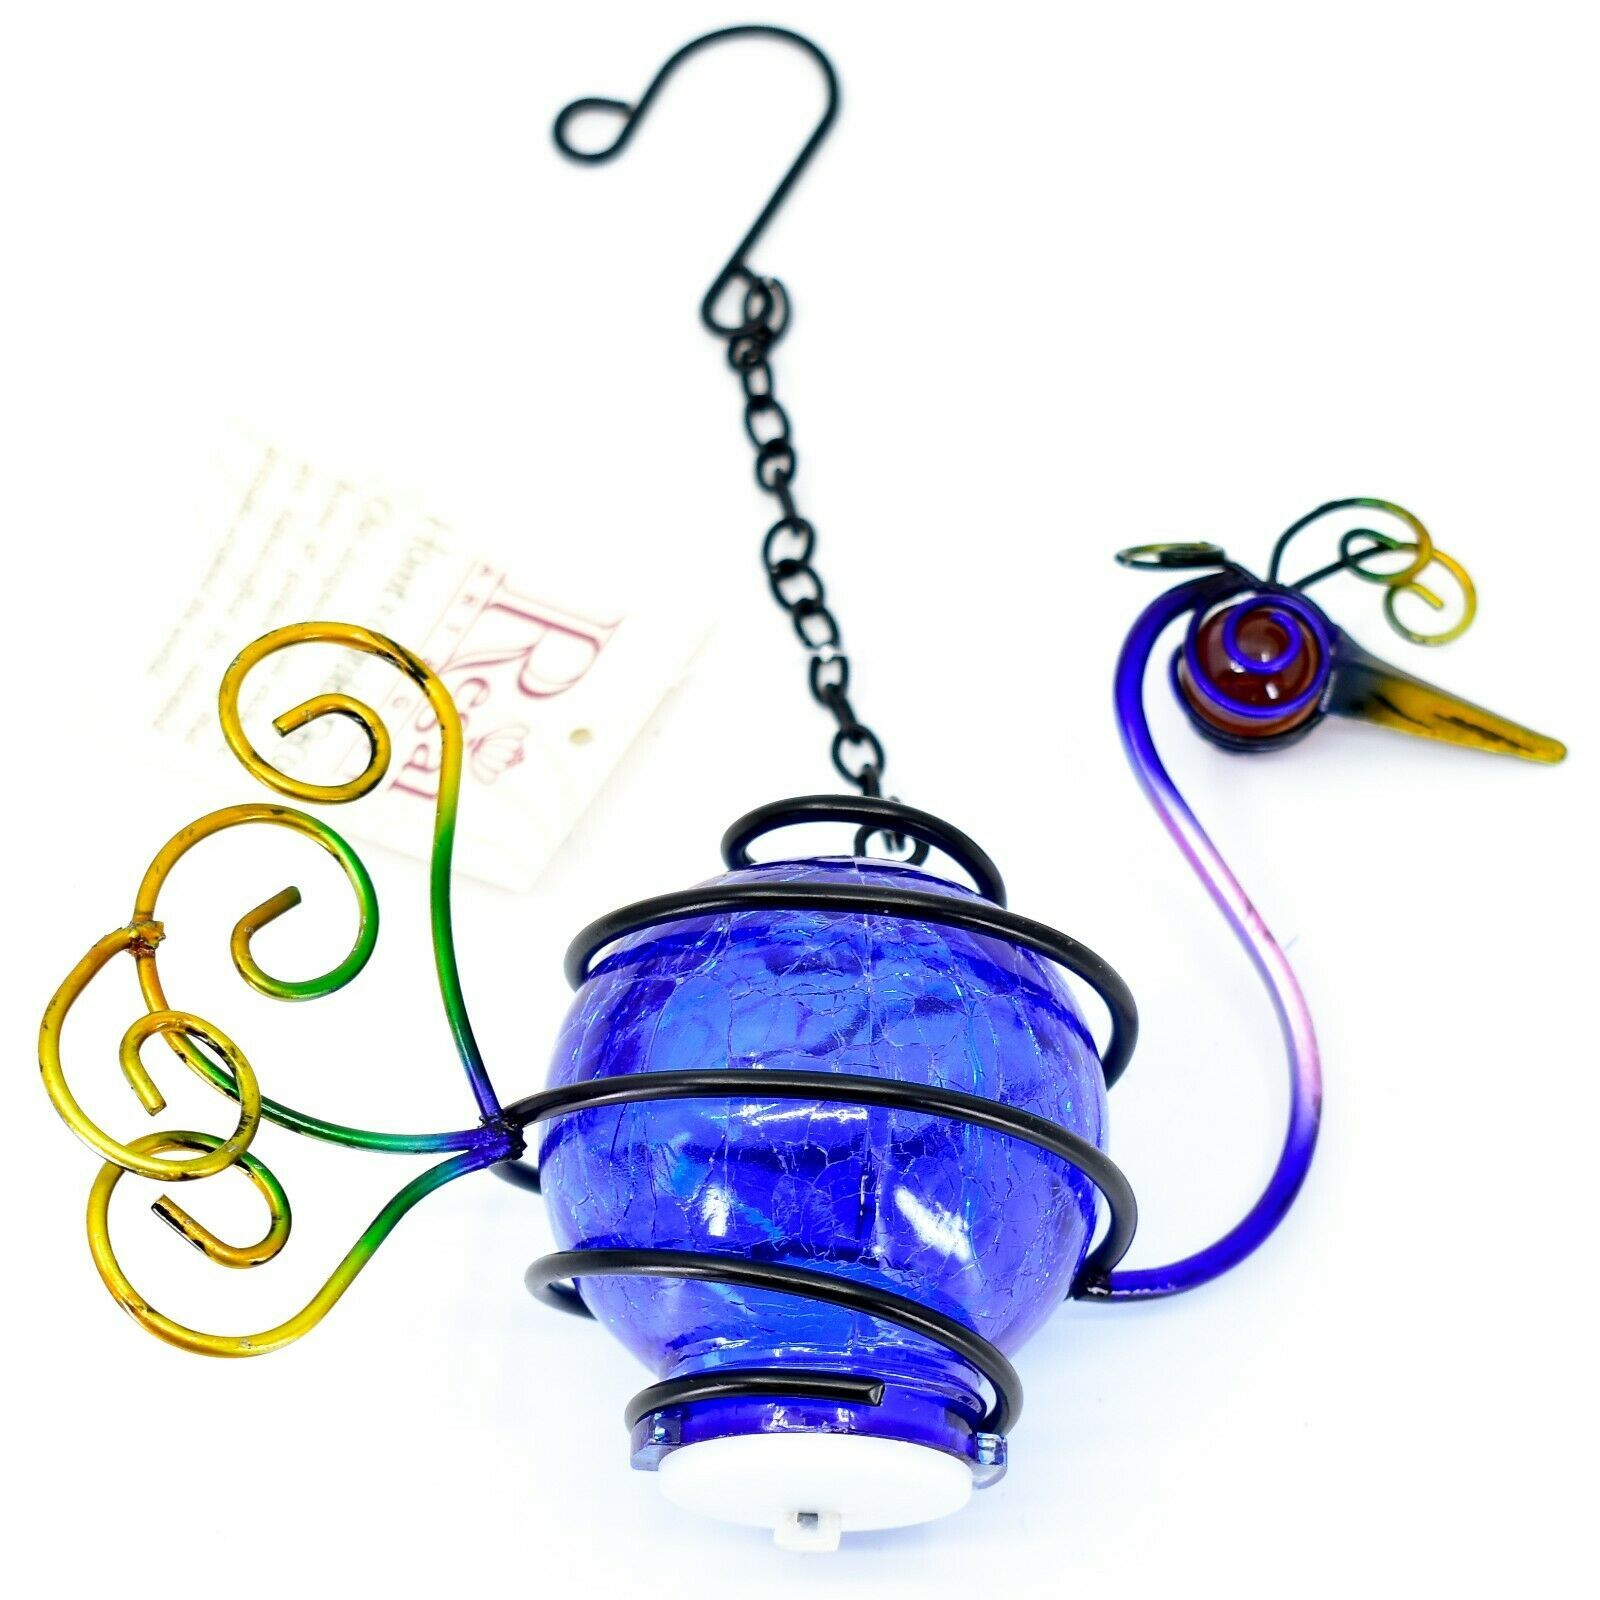 Regal Art & Gift Metal Crackle Glass Peacock Hanging Solar Lantern Garden Decor